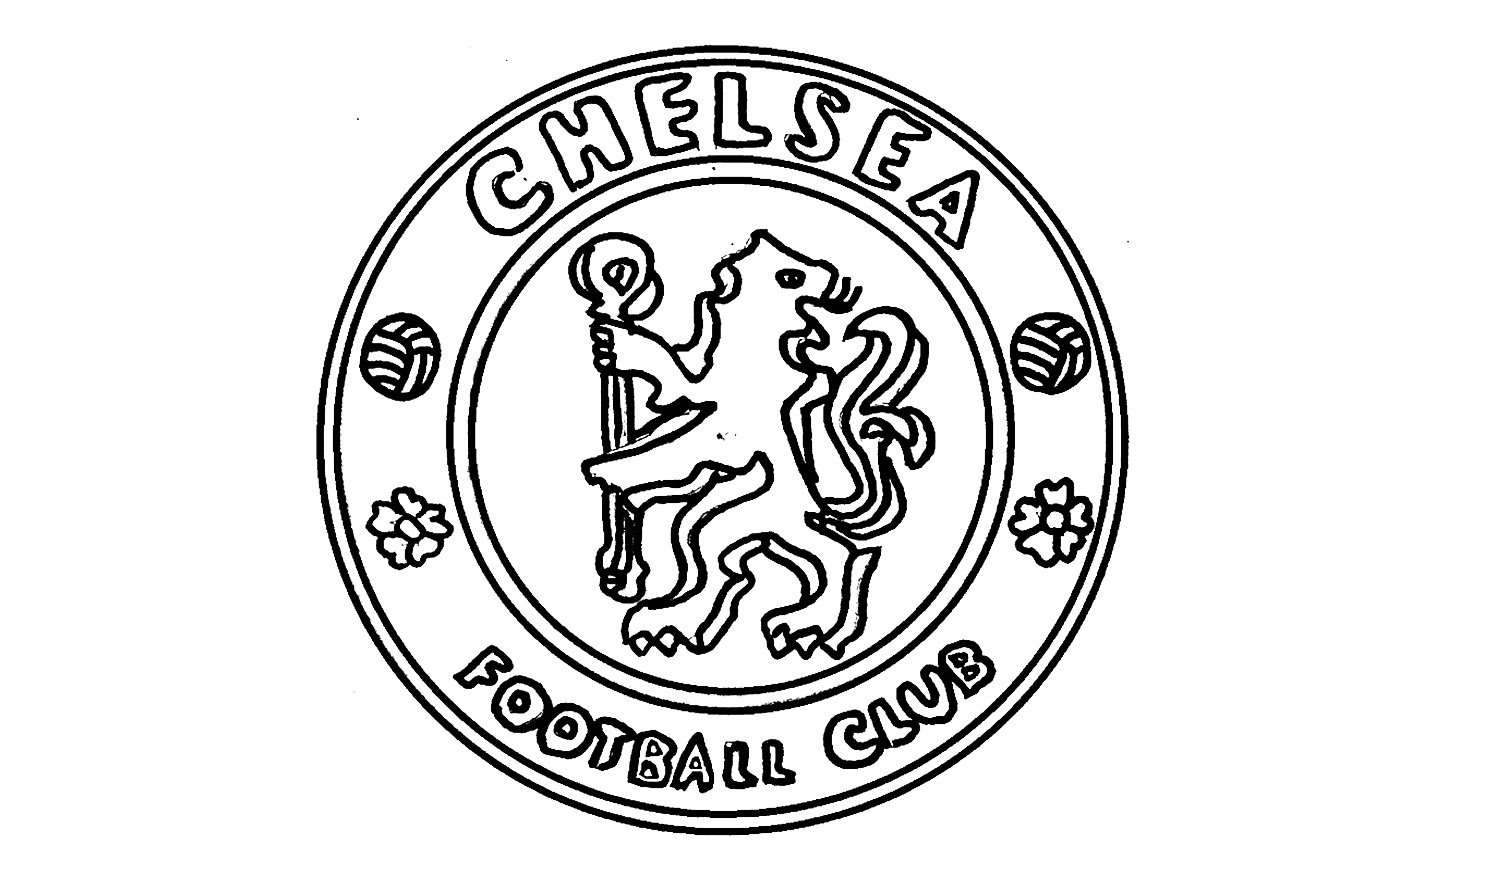 1500x885 How To Draw The Chelsea Fc Logo (Cfc)